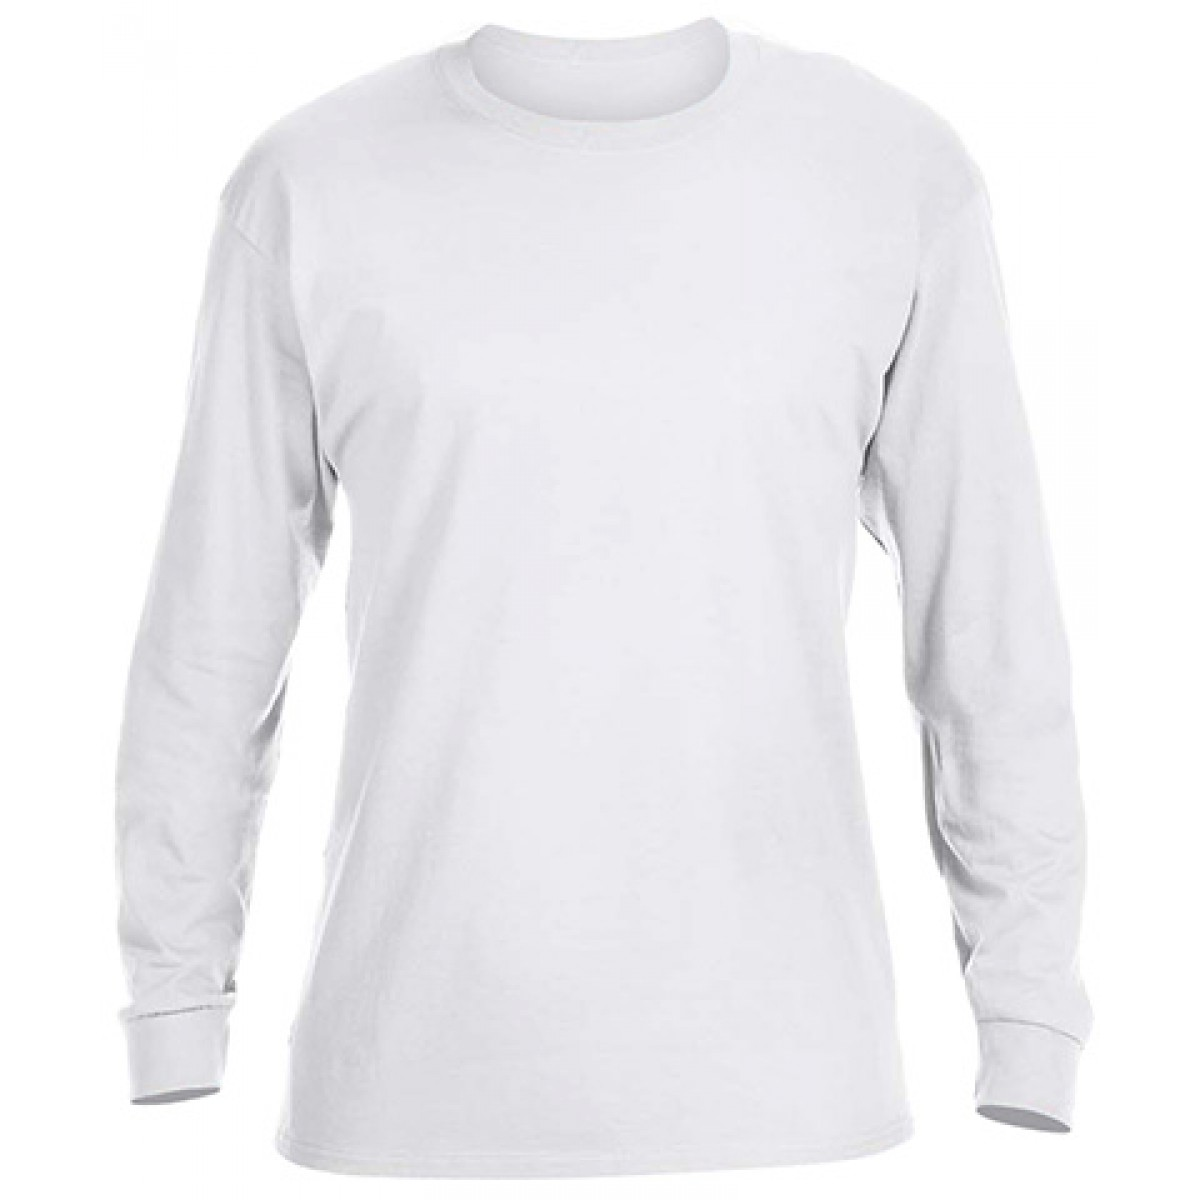 Heavy Cotton Long-Sleeve Adidas Shirt-White-S